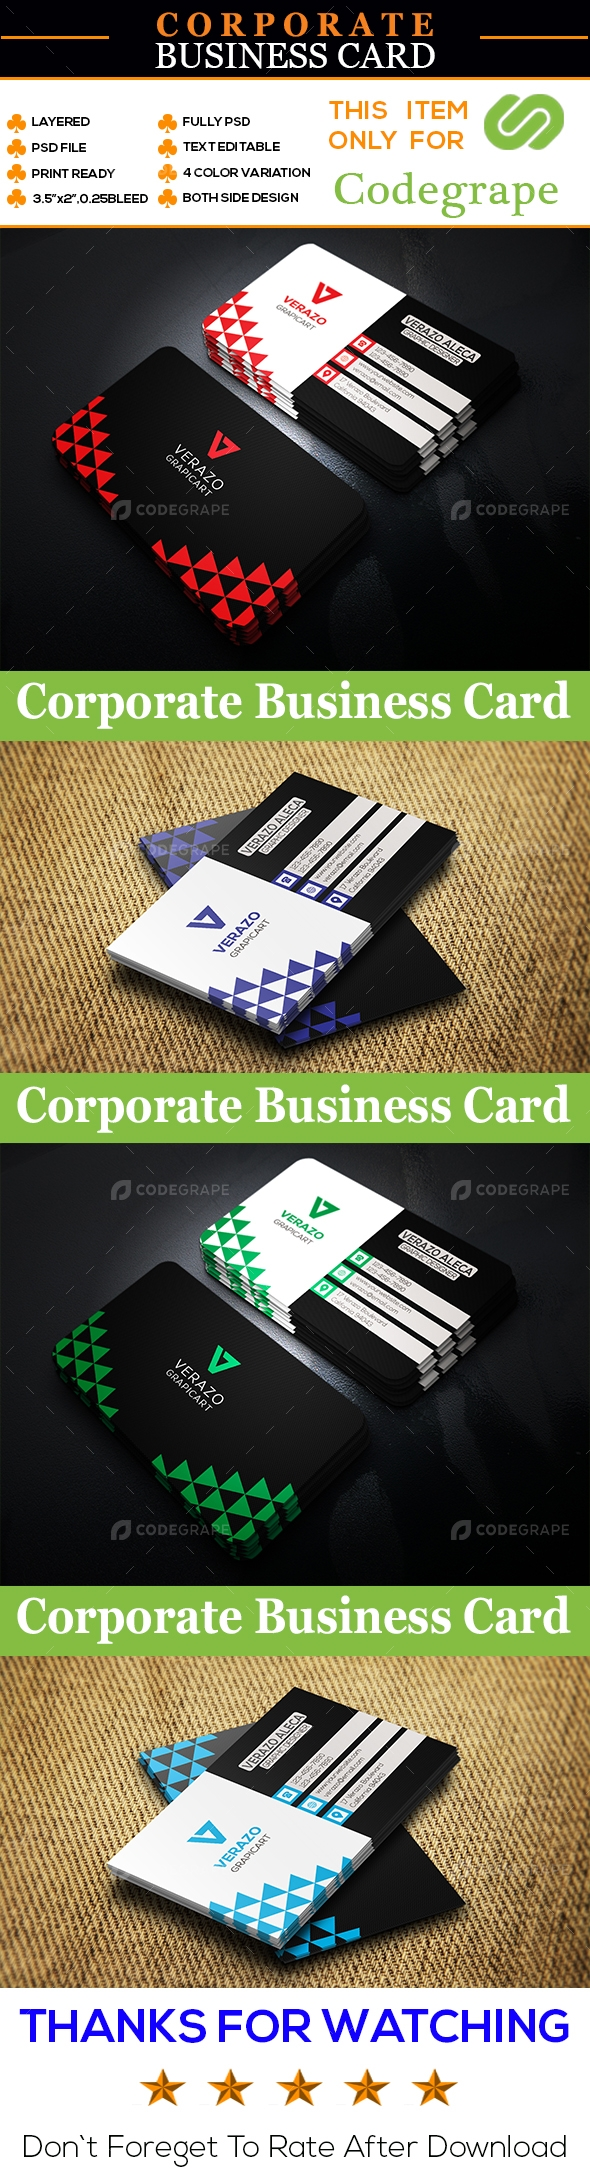 Corporate Business Card.6